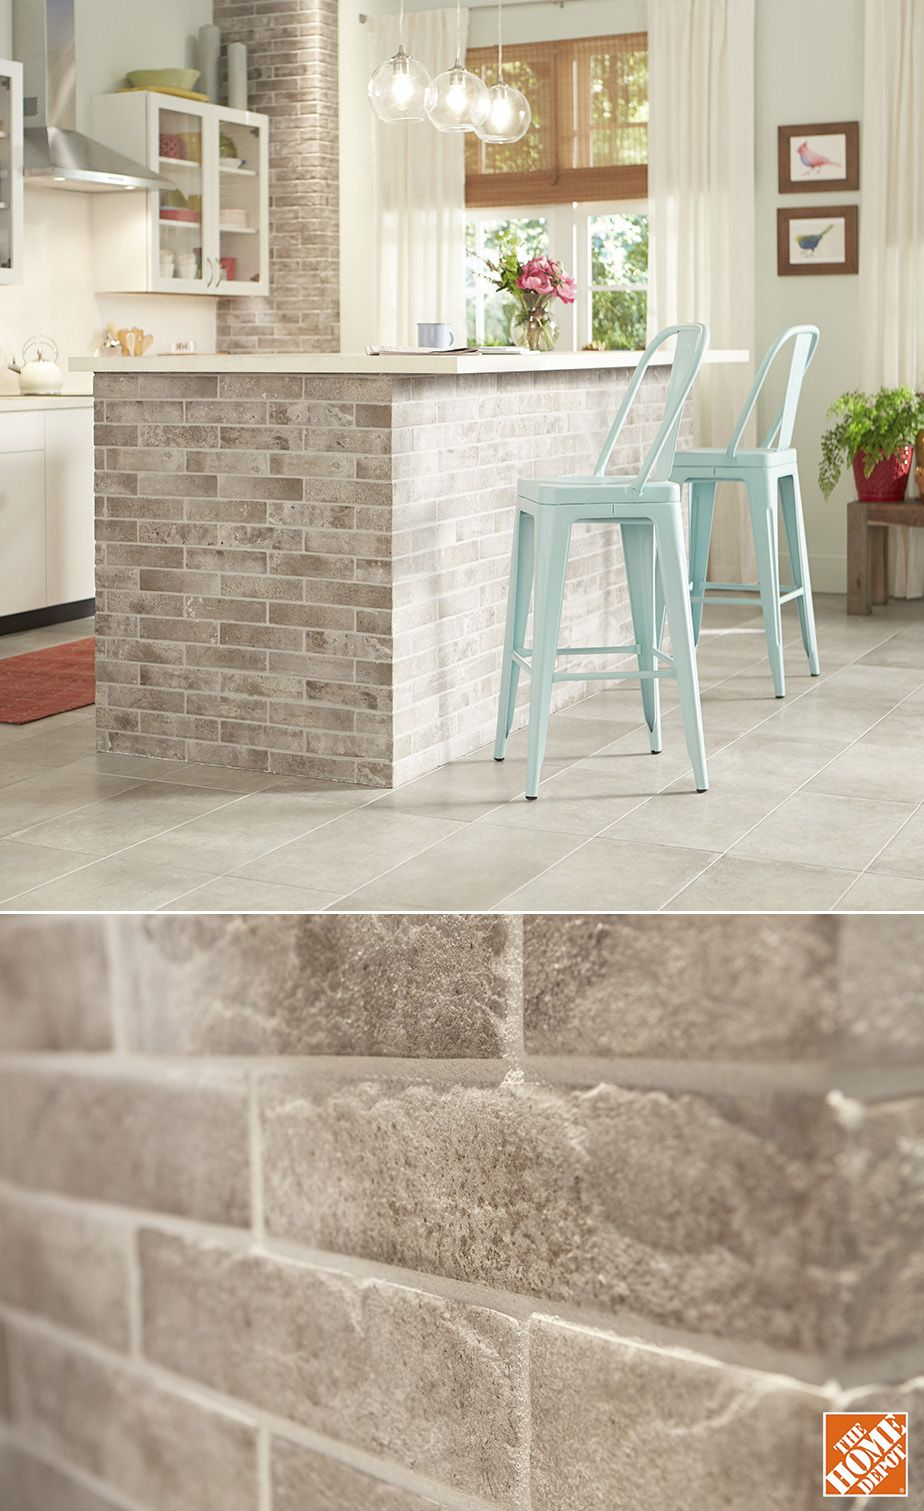 Msi abbey brick 2 13 in x 10 in glazed porcelain floor and wall the bricks you see here are actually glazed porcelain tiles you can add the classic dailygadgetfo Images